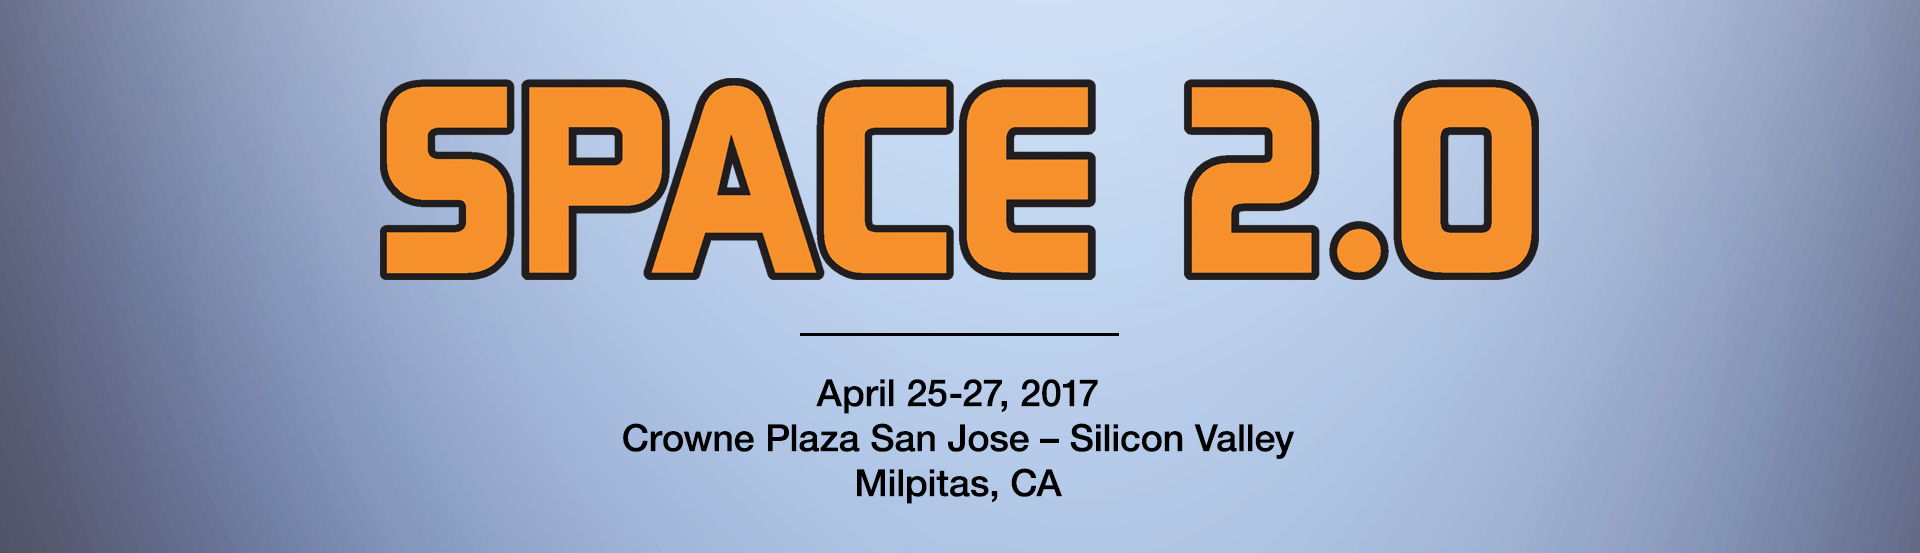 Space 2.0, 2017, Main Banner